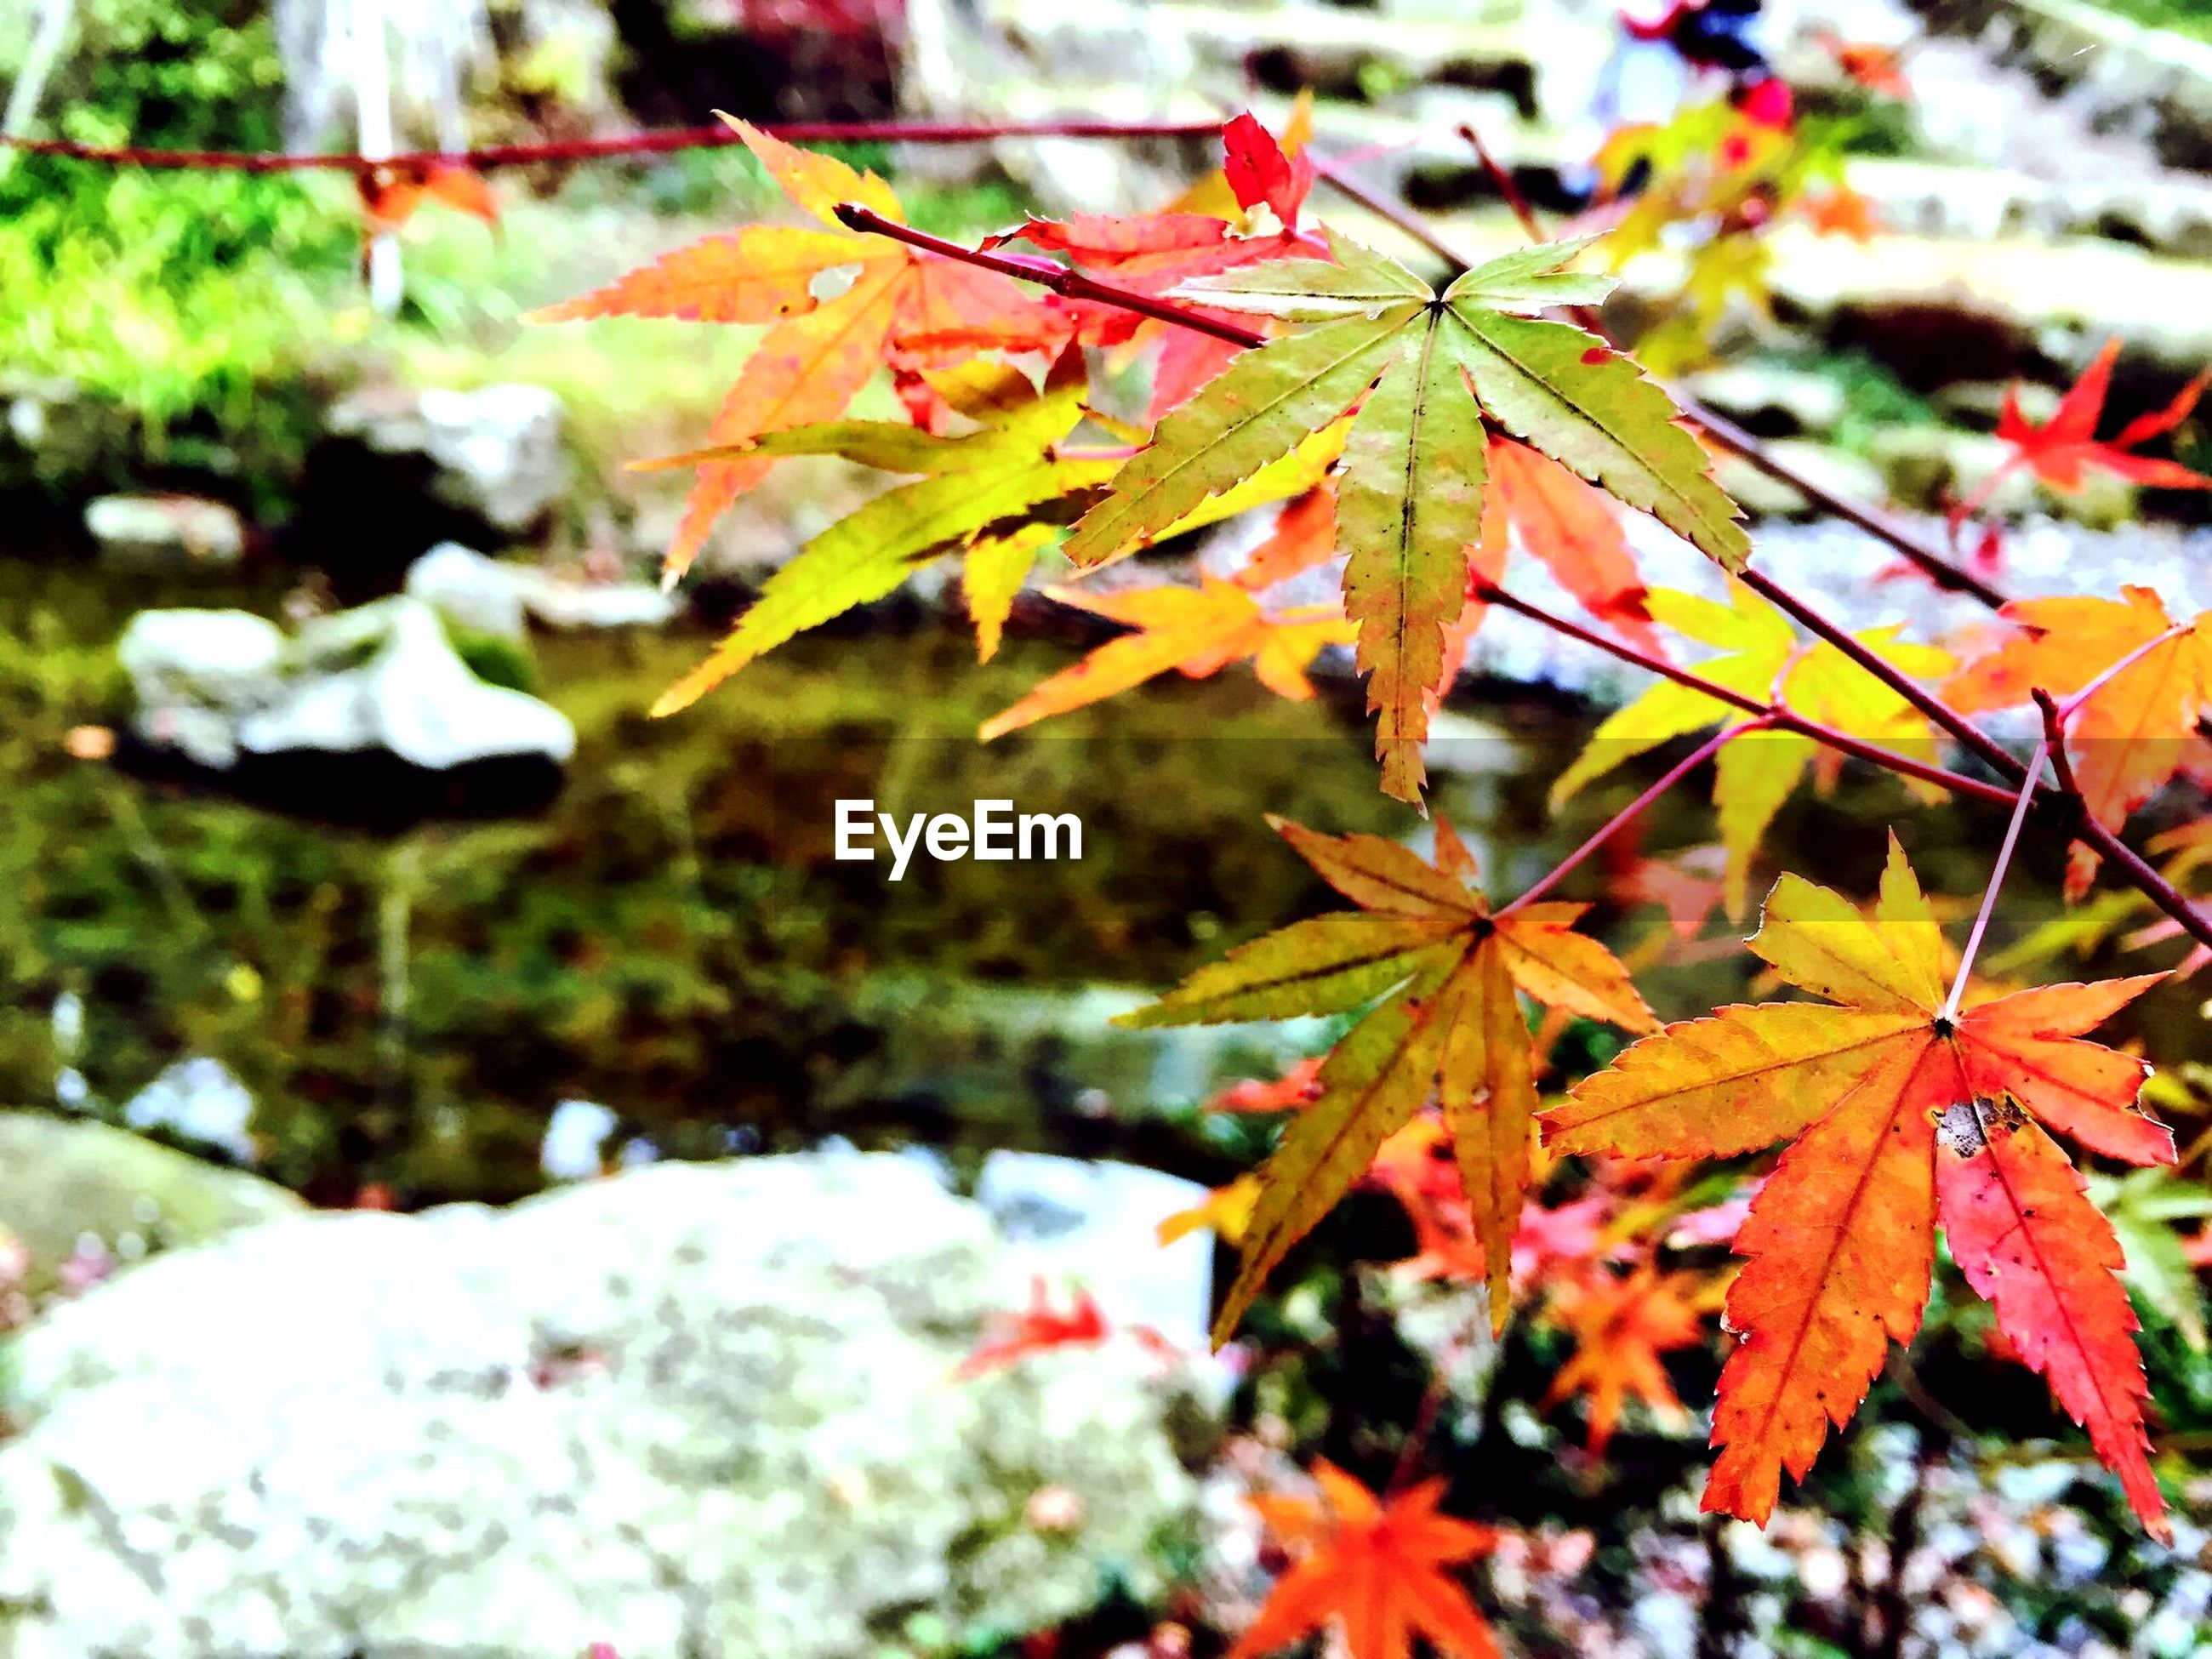 leaf, nature, autumn, change, no people, outdoors, maple leaf, close-up, day, leaves, beauty in nature, tree, maple